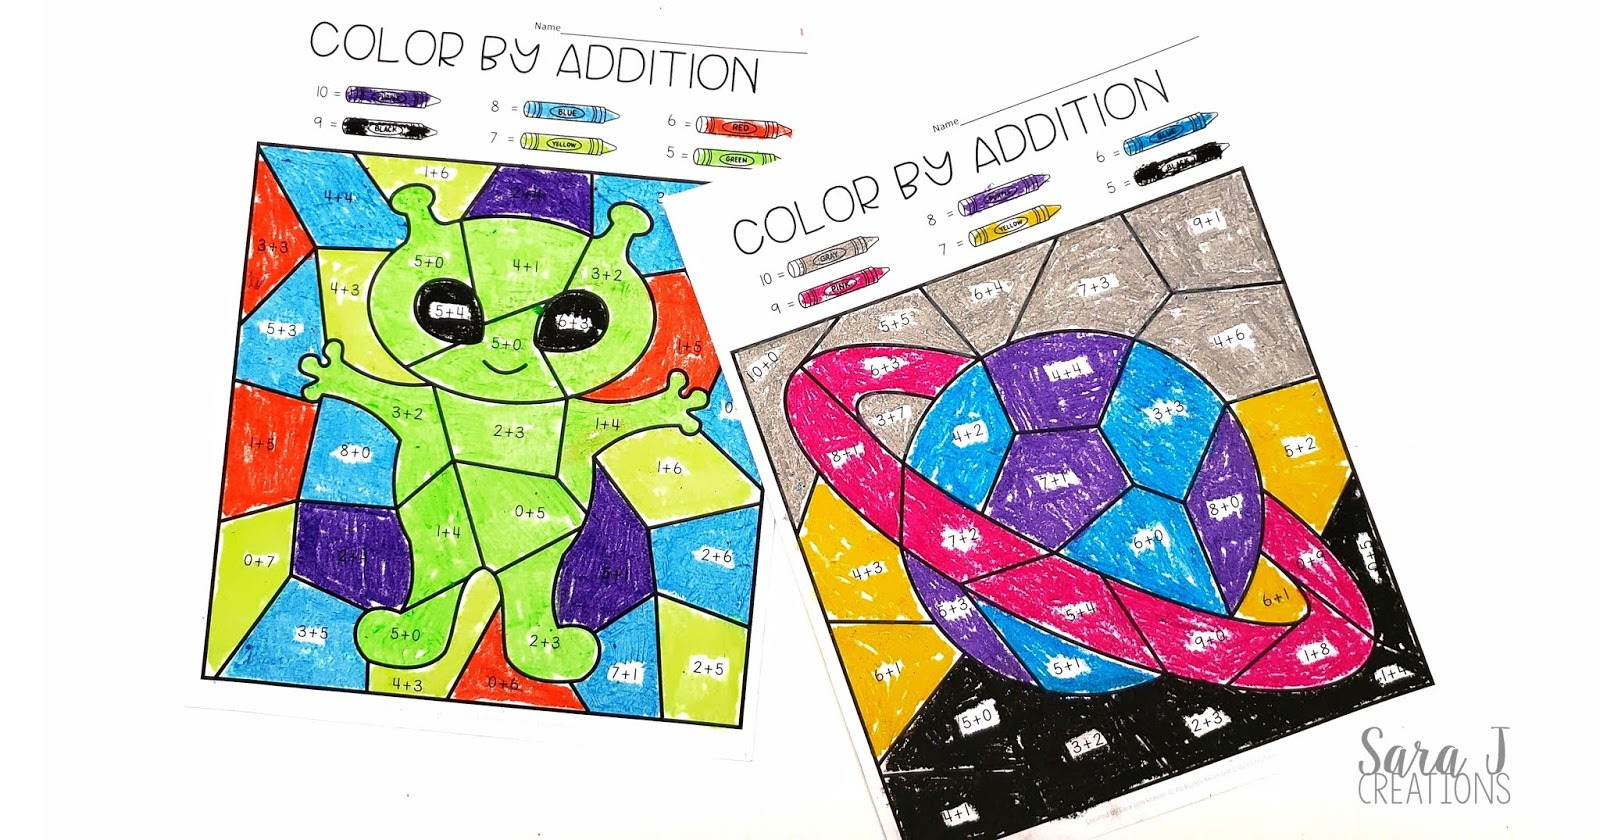 small resolution of Color by Addition Free Space Themed Printable   Sara J Creations